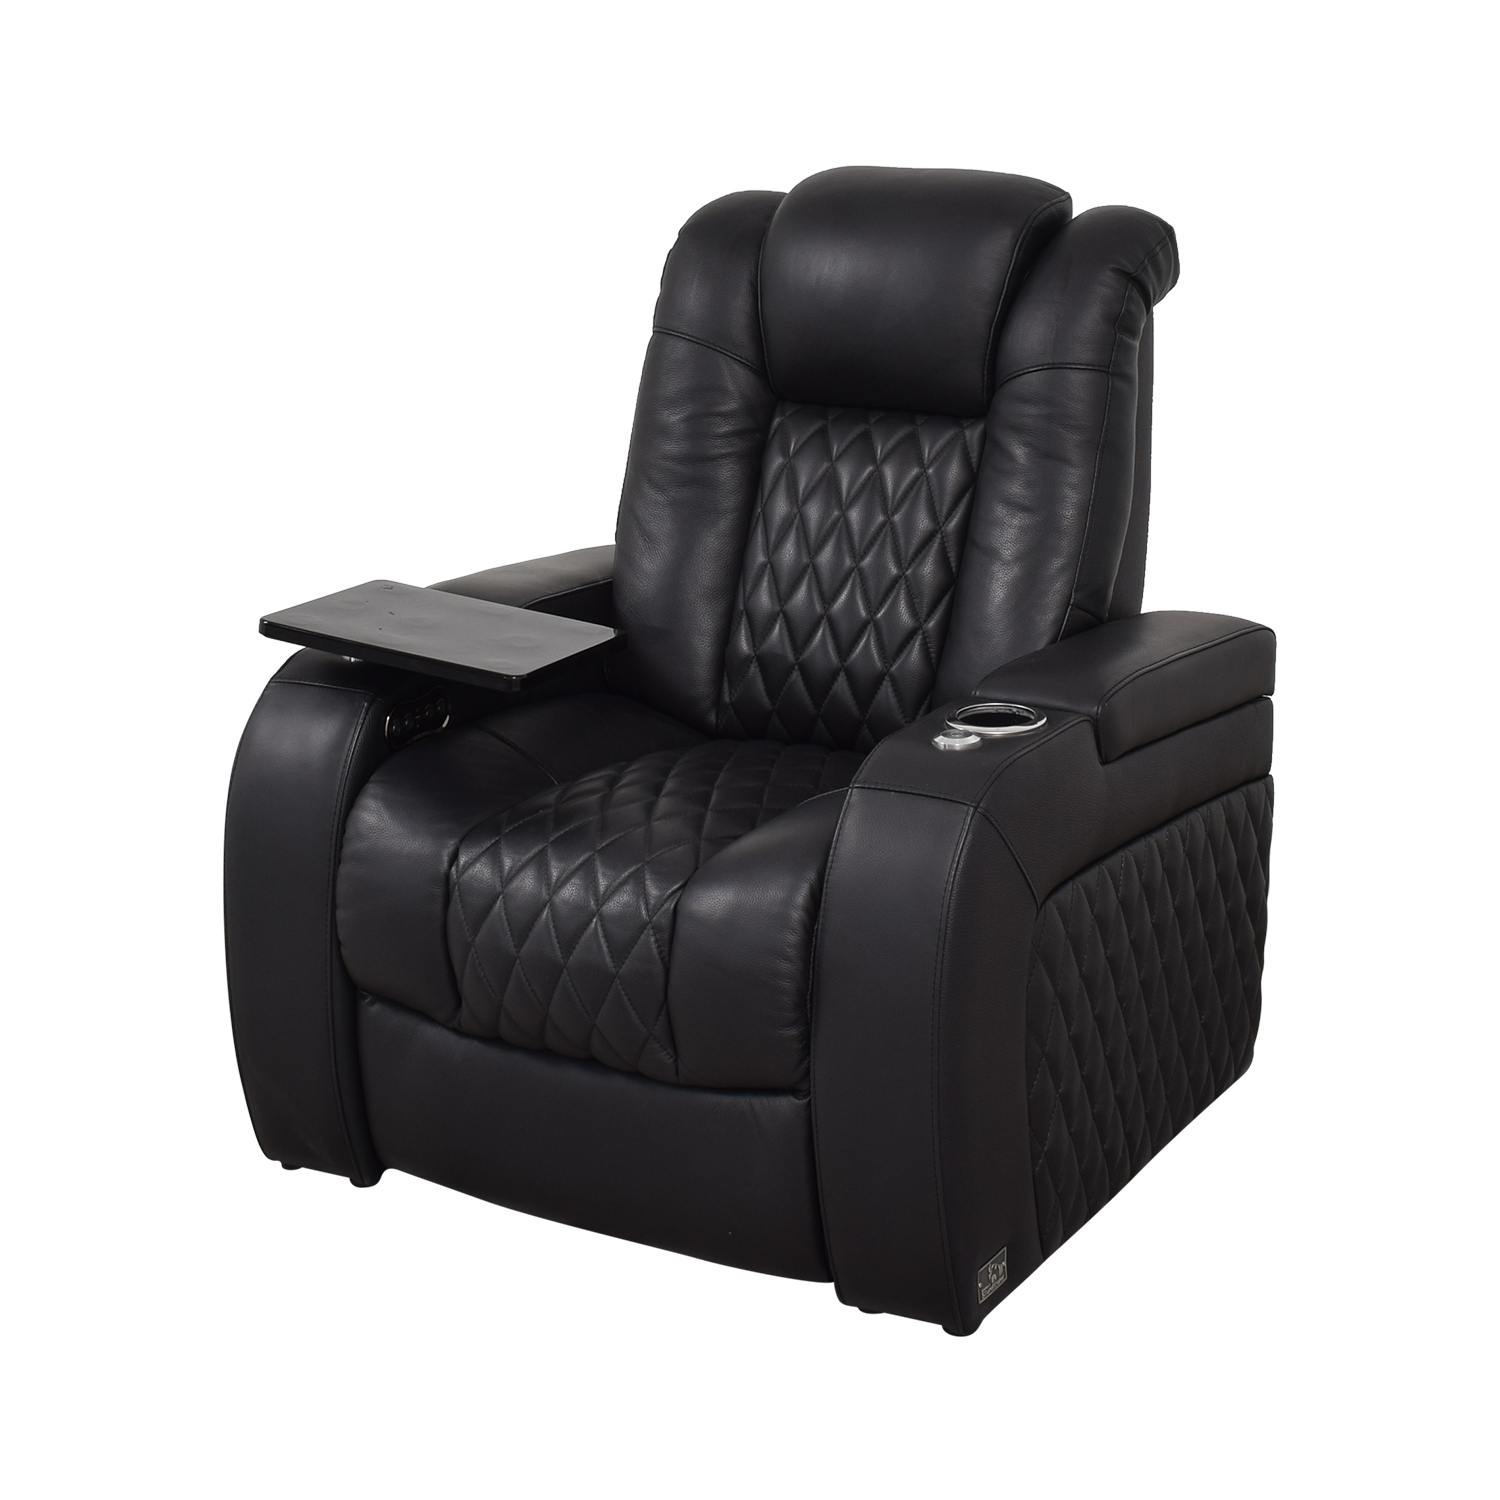 shop Seatcraft Seatcraft Diamante Home Theater Seating Leather Power Recliner online